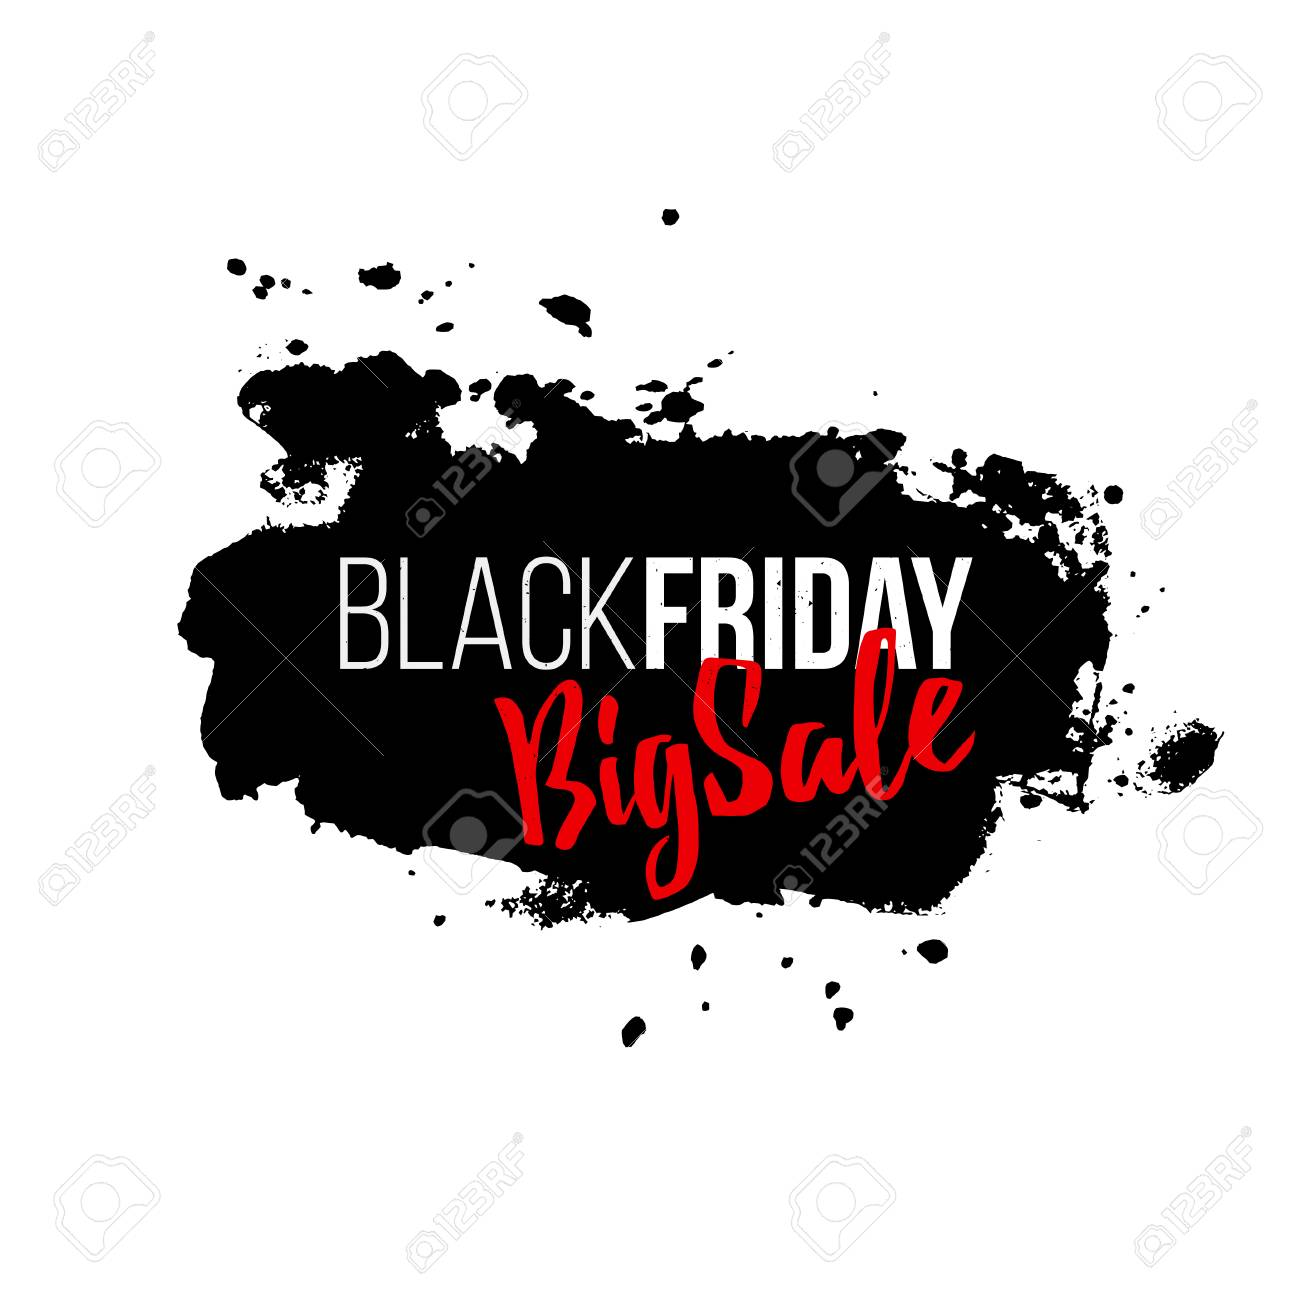 Design Clothes Online Free Game | Black Friday Sale Design Template Banner Discount For Clothing